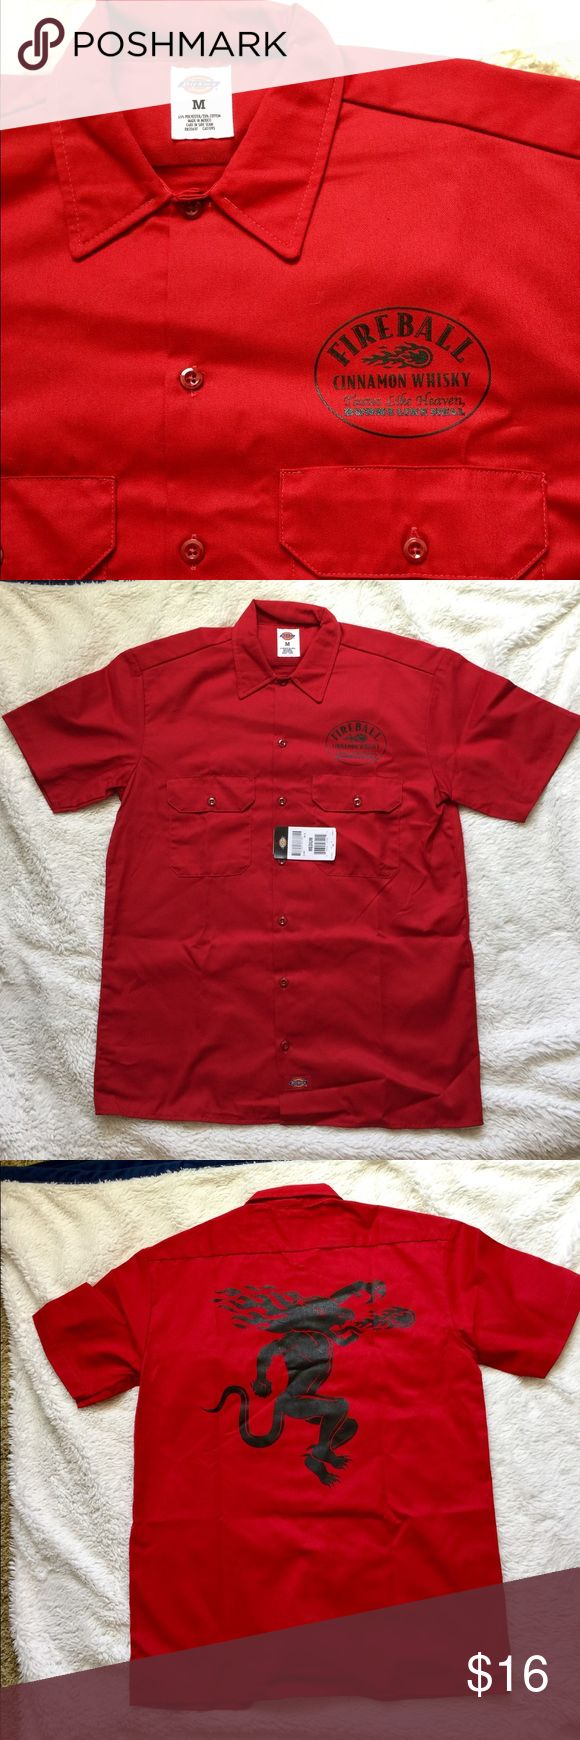 Fireball Whisky Dickies Mens Button Shirt NEW This is a brand new Fireball Red Dickies Mens Button Shirt with Fireball whisky logo on front and Fireball Whisky Dragon on back.  Shirt is new with tags. Size is medium. Dickies Shirts Casual Button Down Shirts